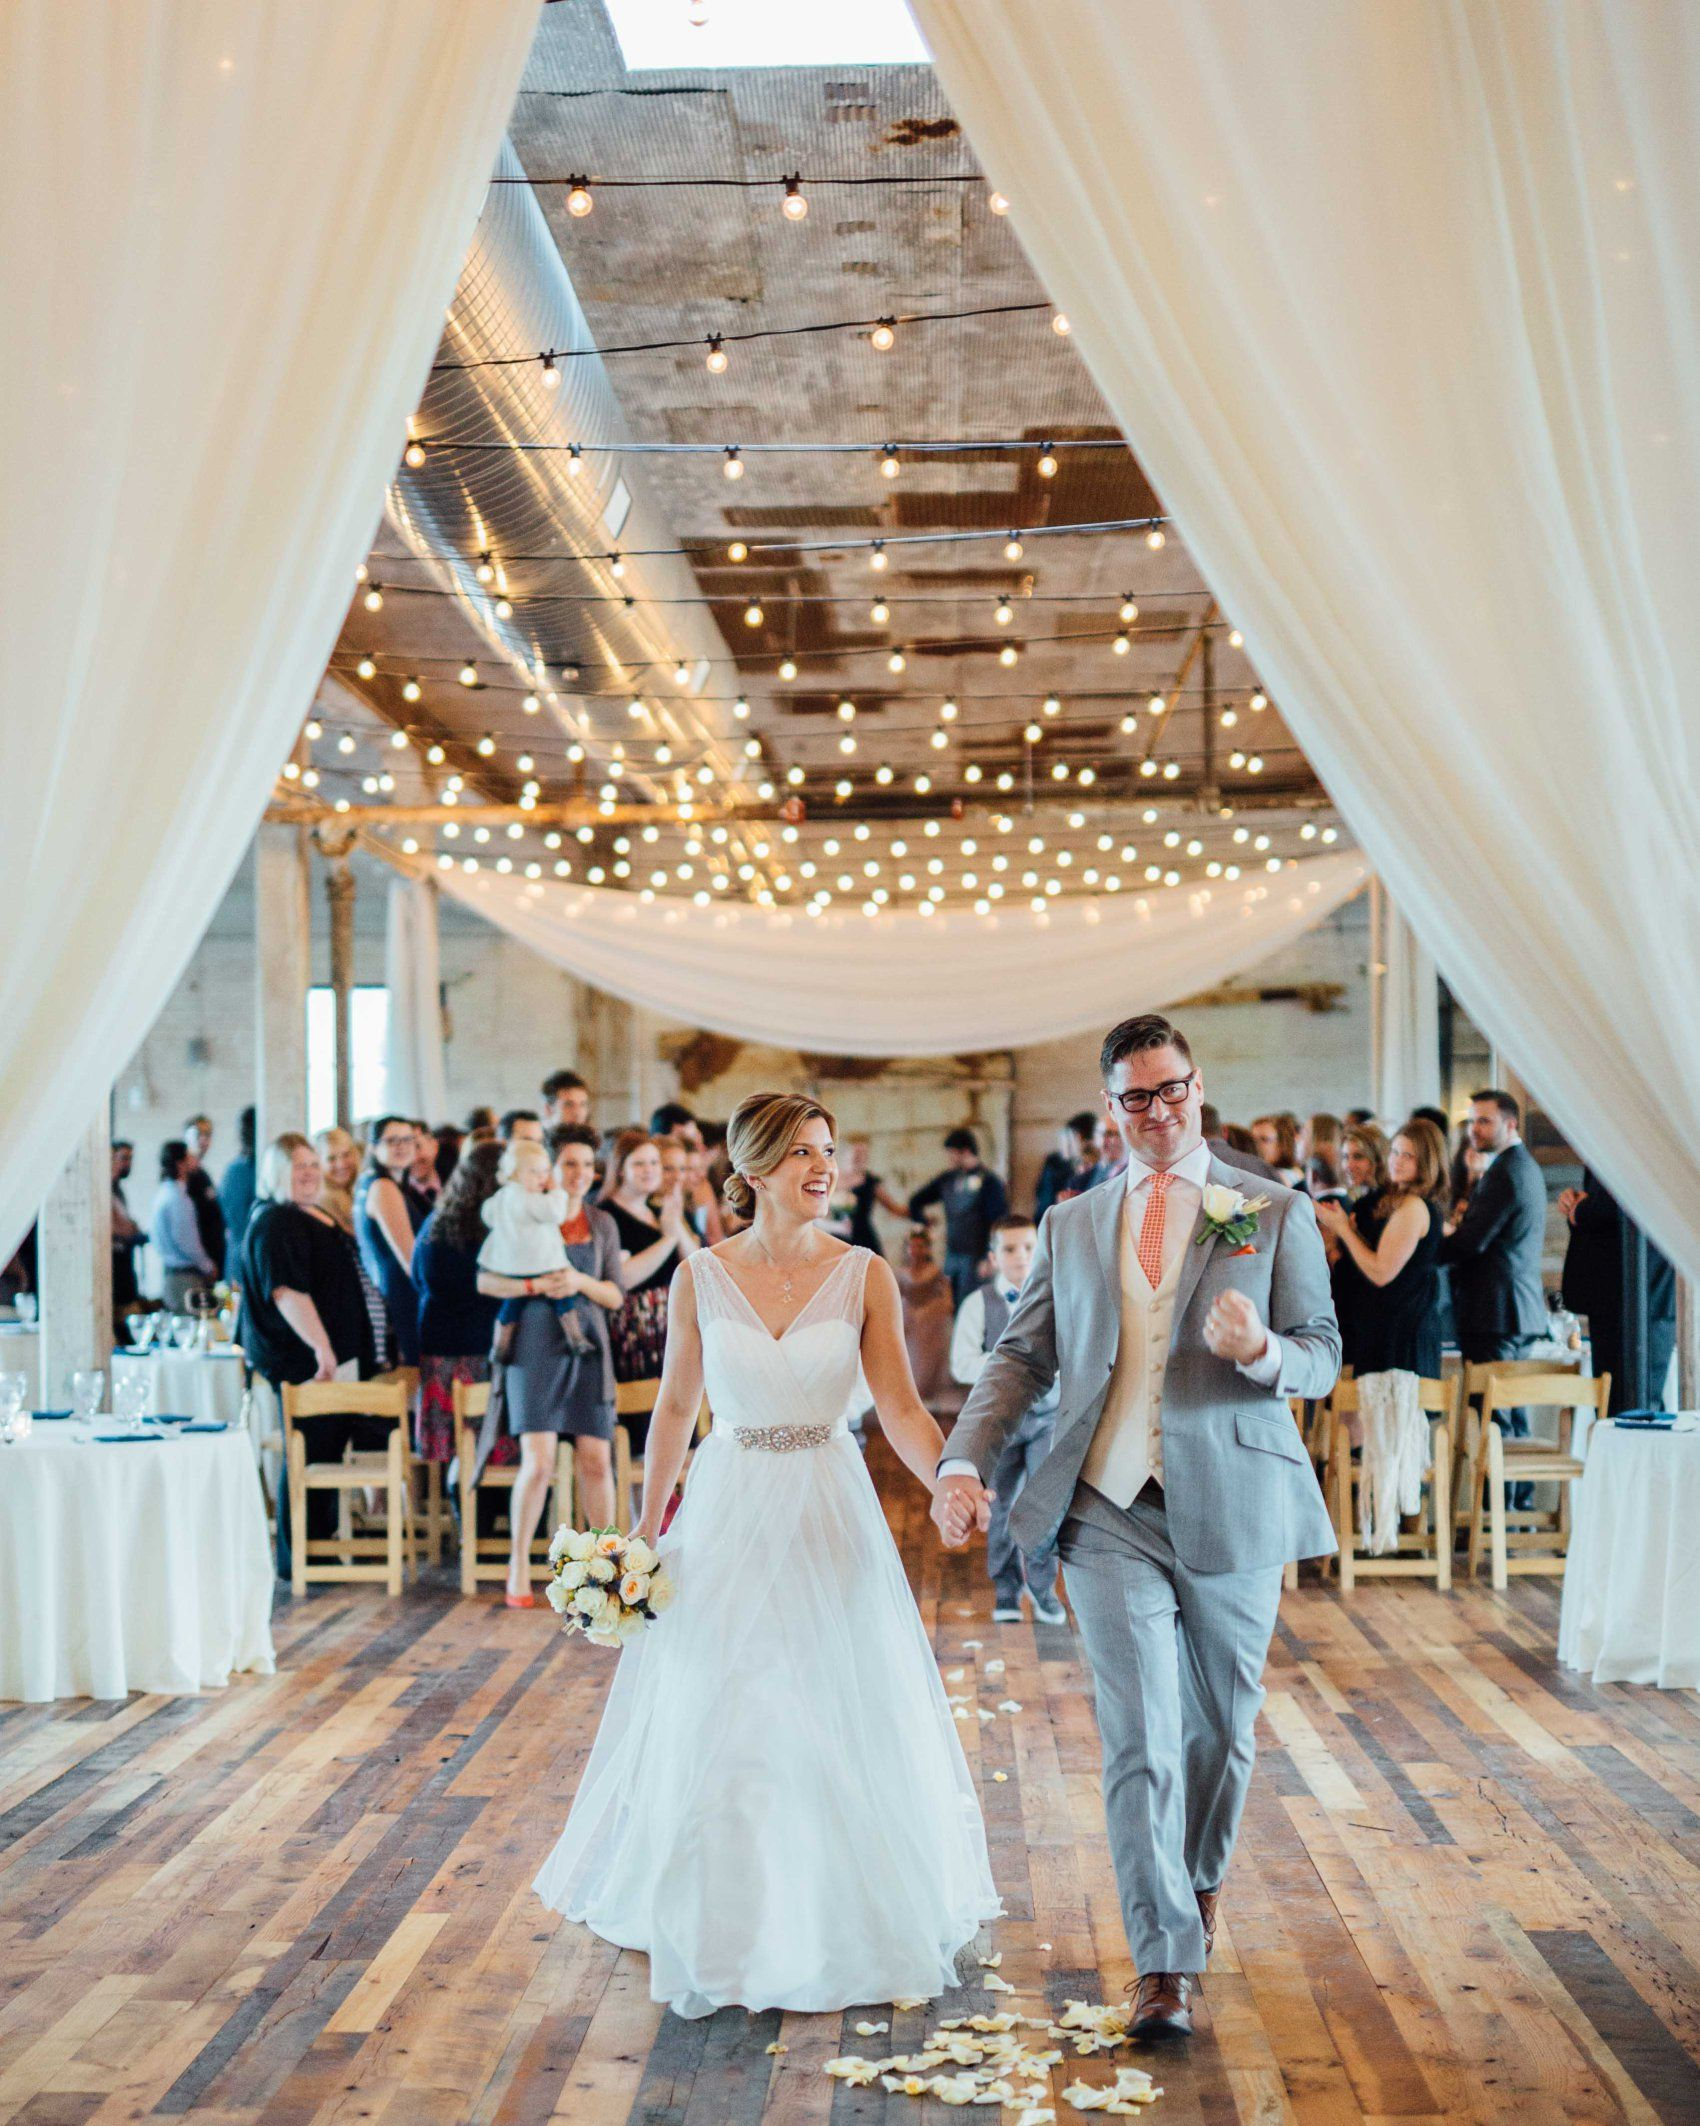 Michigan Wedding Venues.Journeyman Distillery Is My Favorite Wedding Venue In Michigan